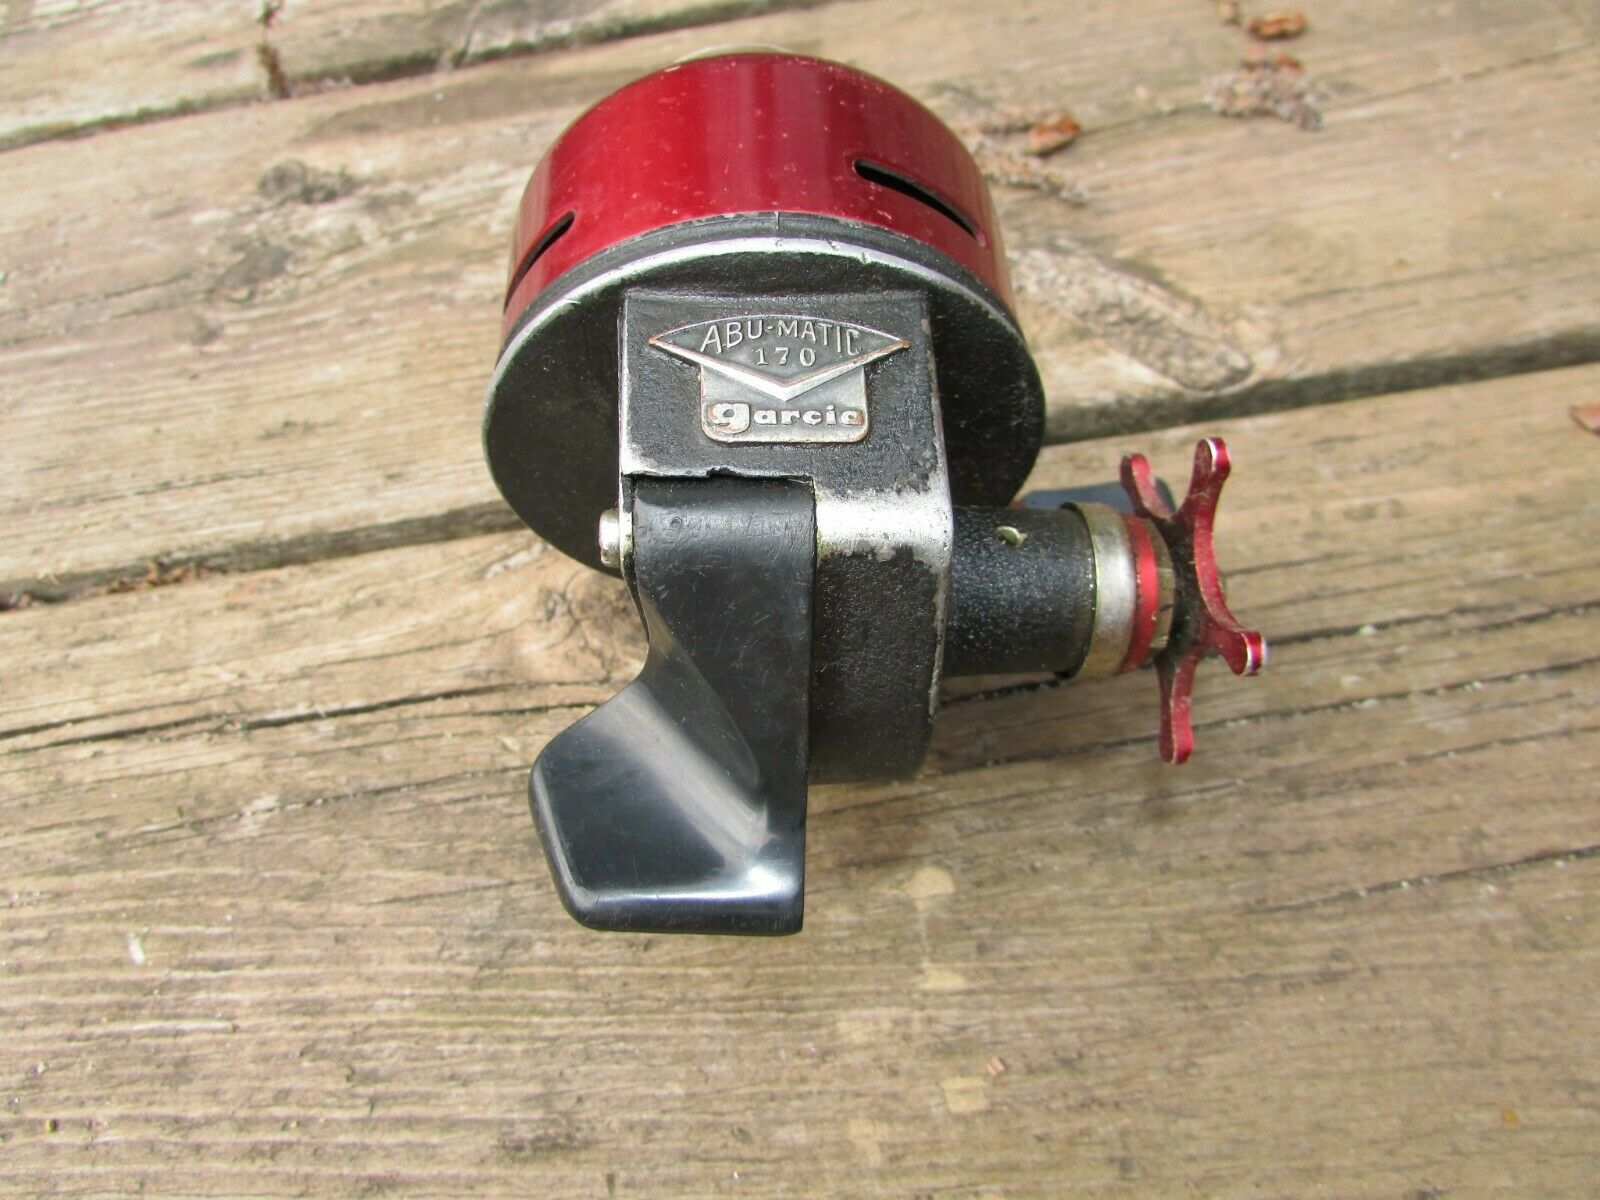 Vintage Fishing Reel ABU-MATIC 170 Garcia  Red Casting Reel Functions Sweden  for wholesale